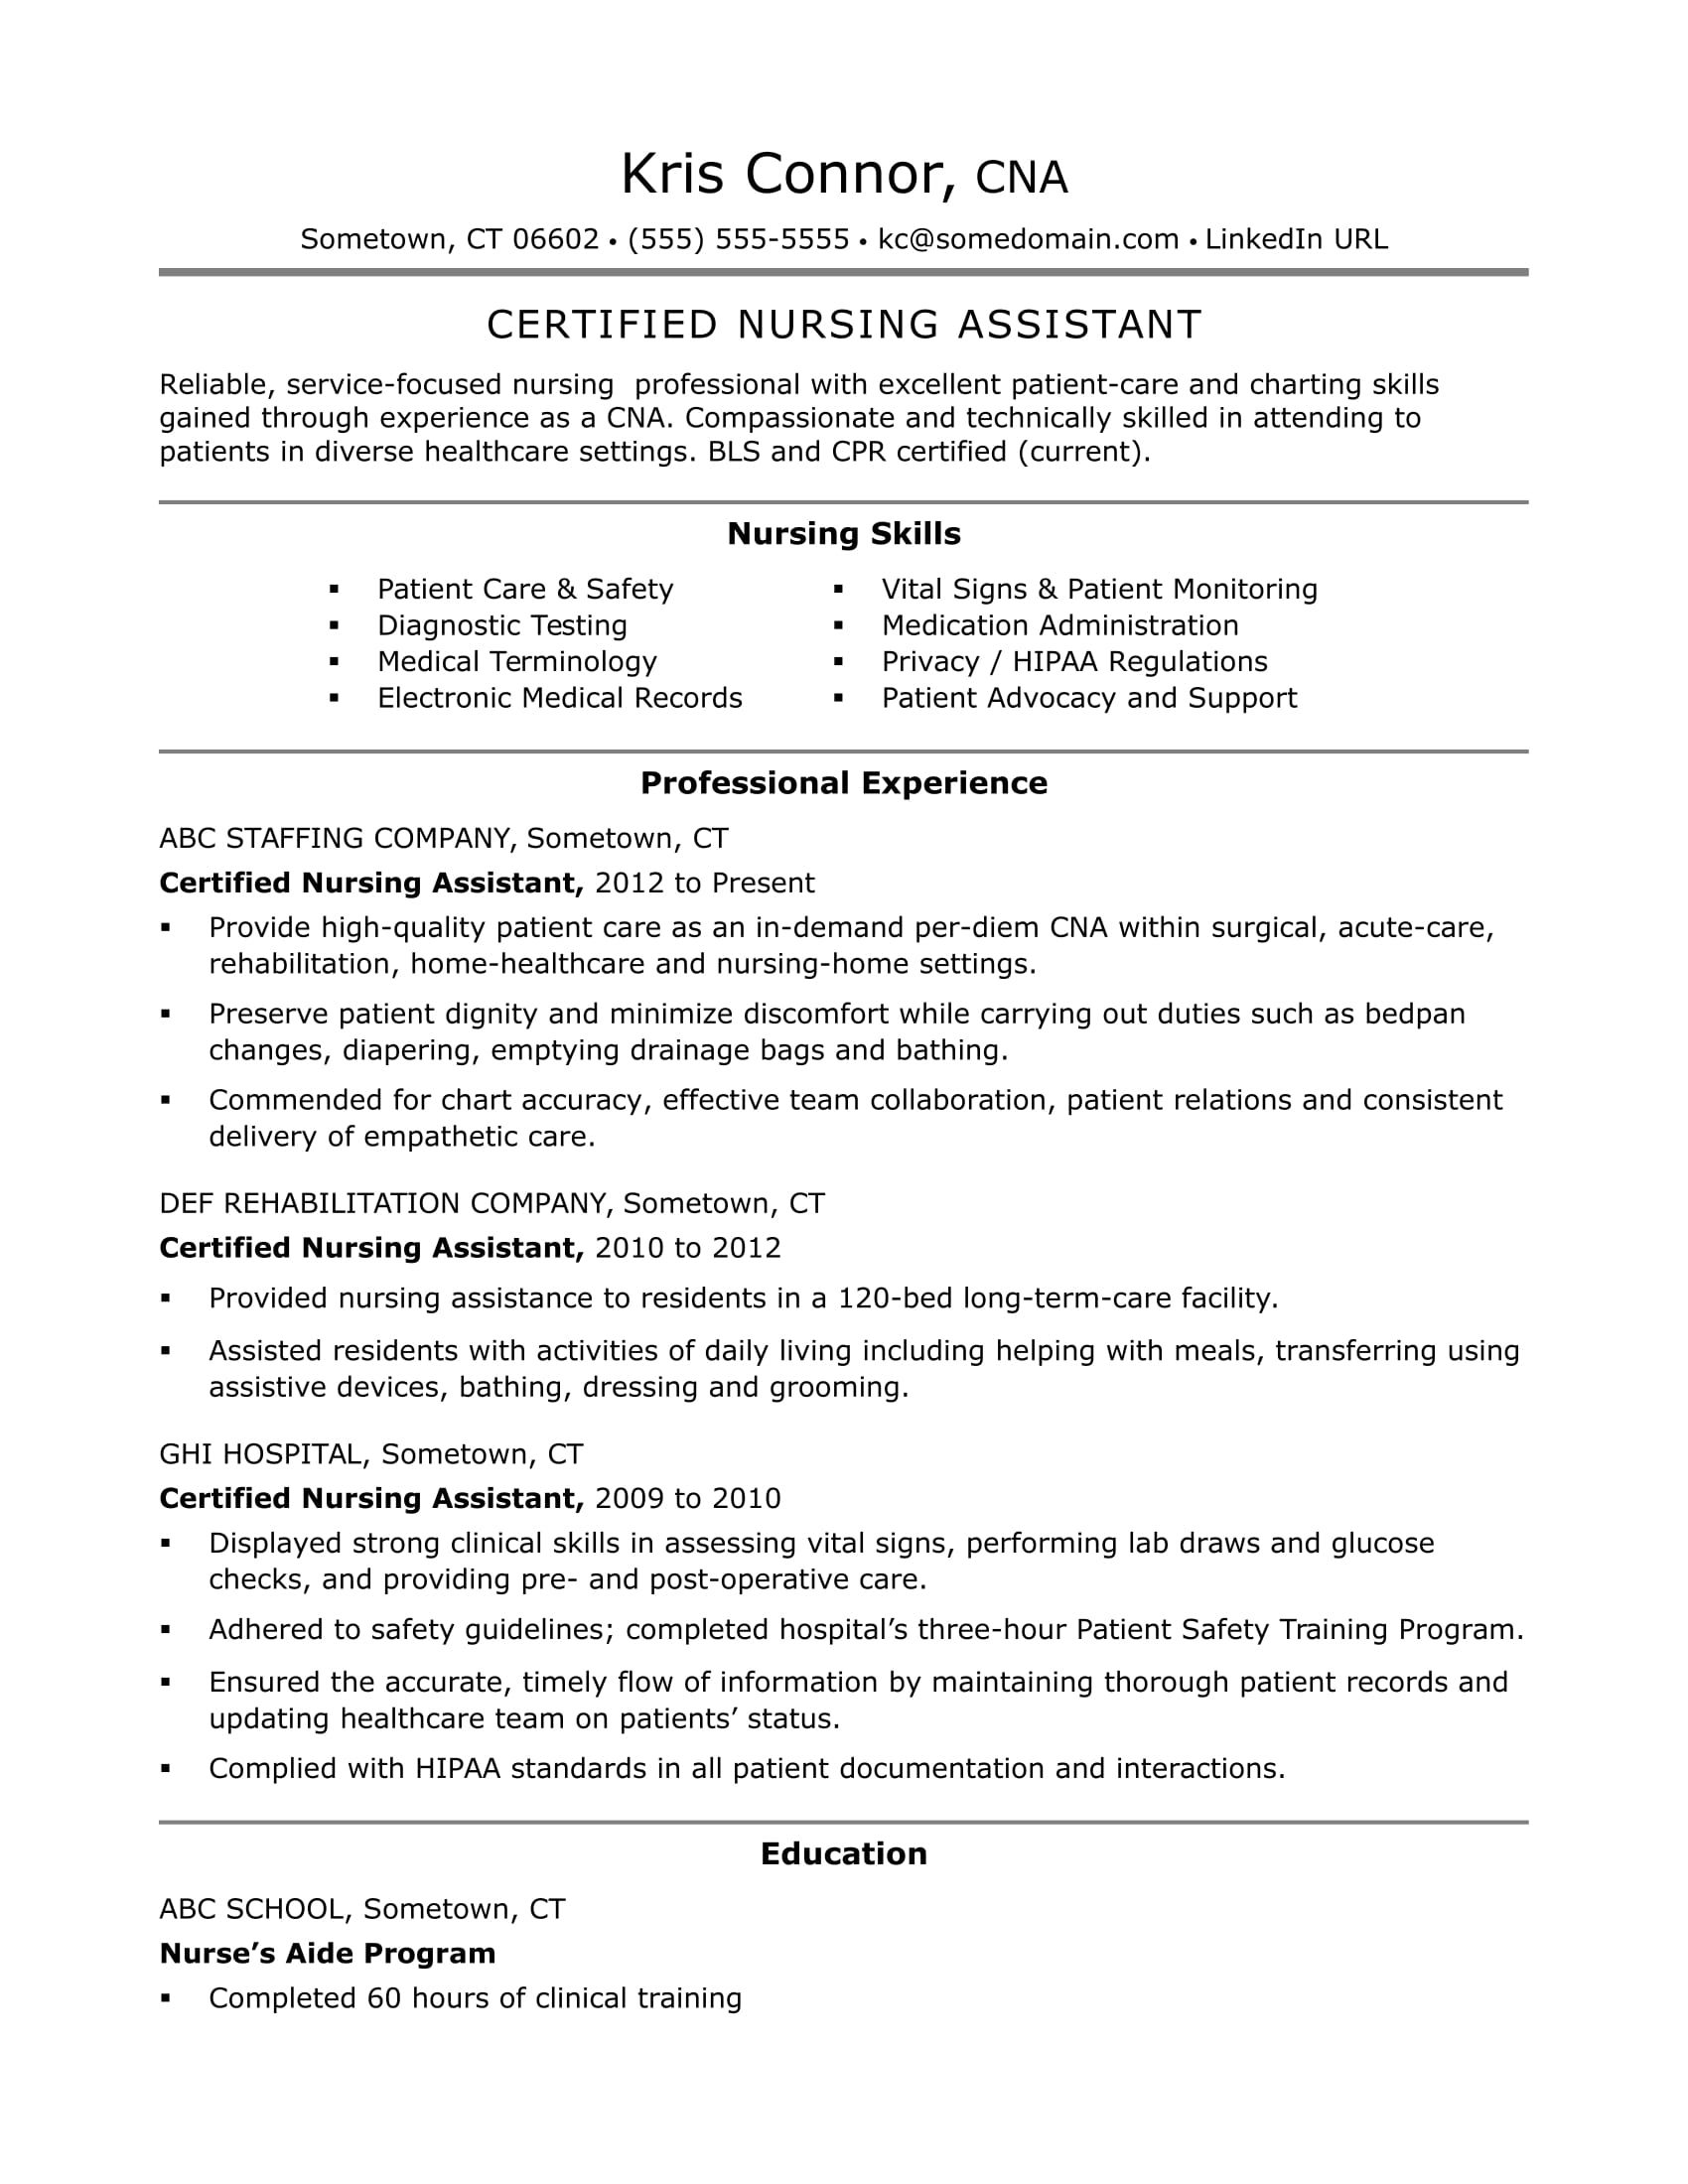 Cna resume examples skills for cnas monster cna resume example yelopaper Gallery